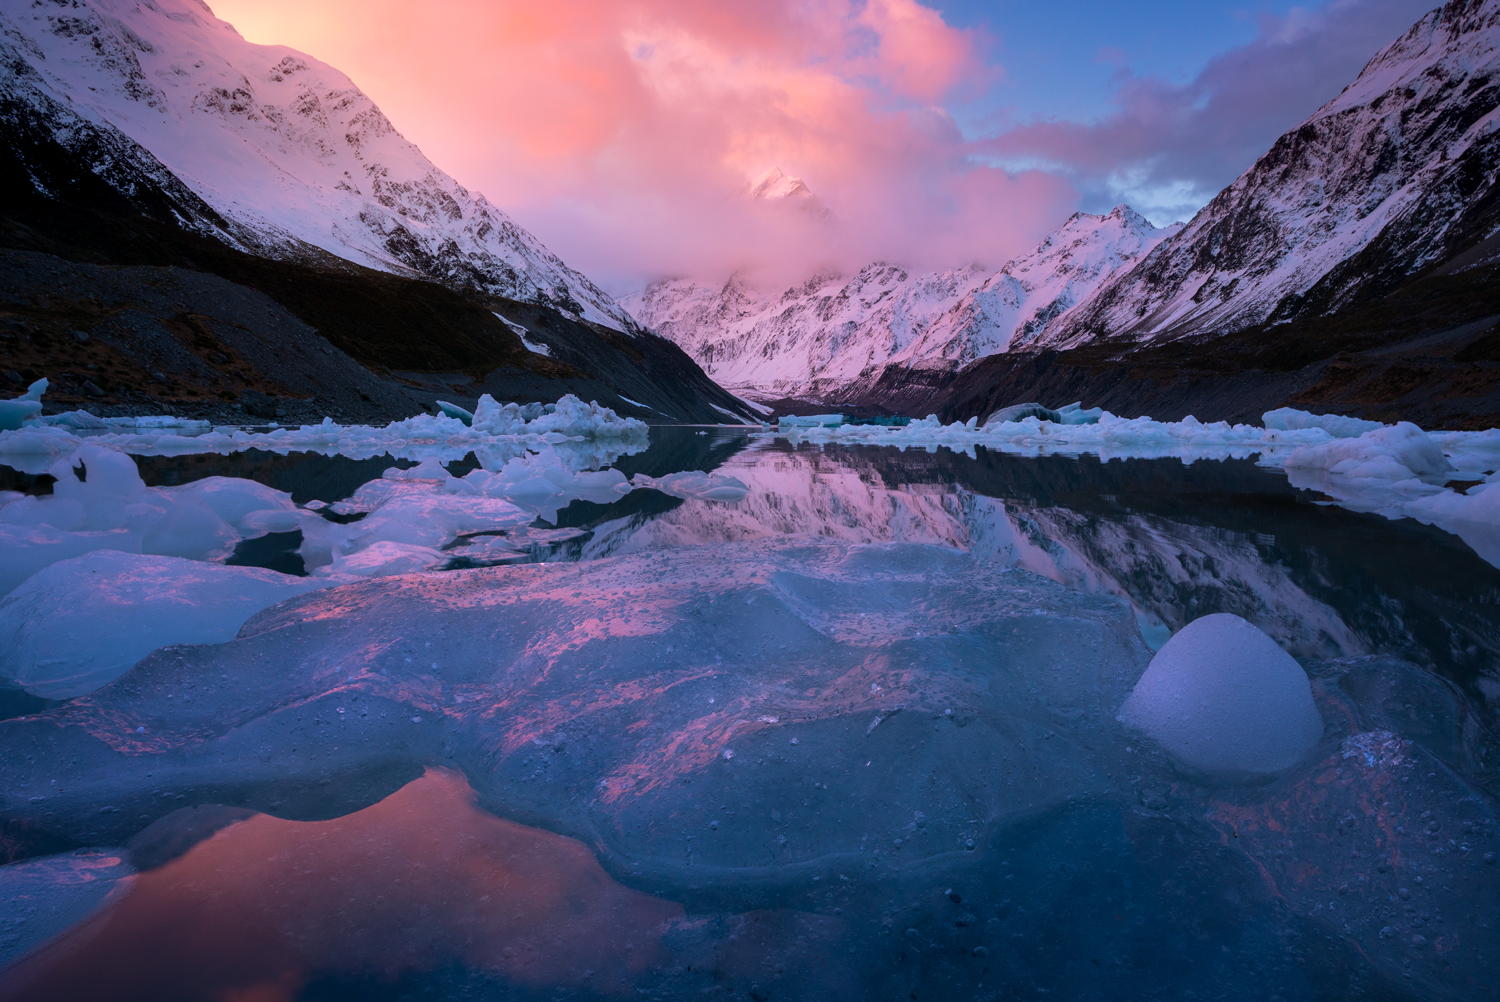 Aoraki and the Tasman lake at sunset.